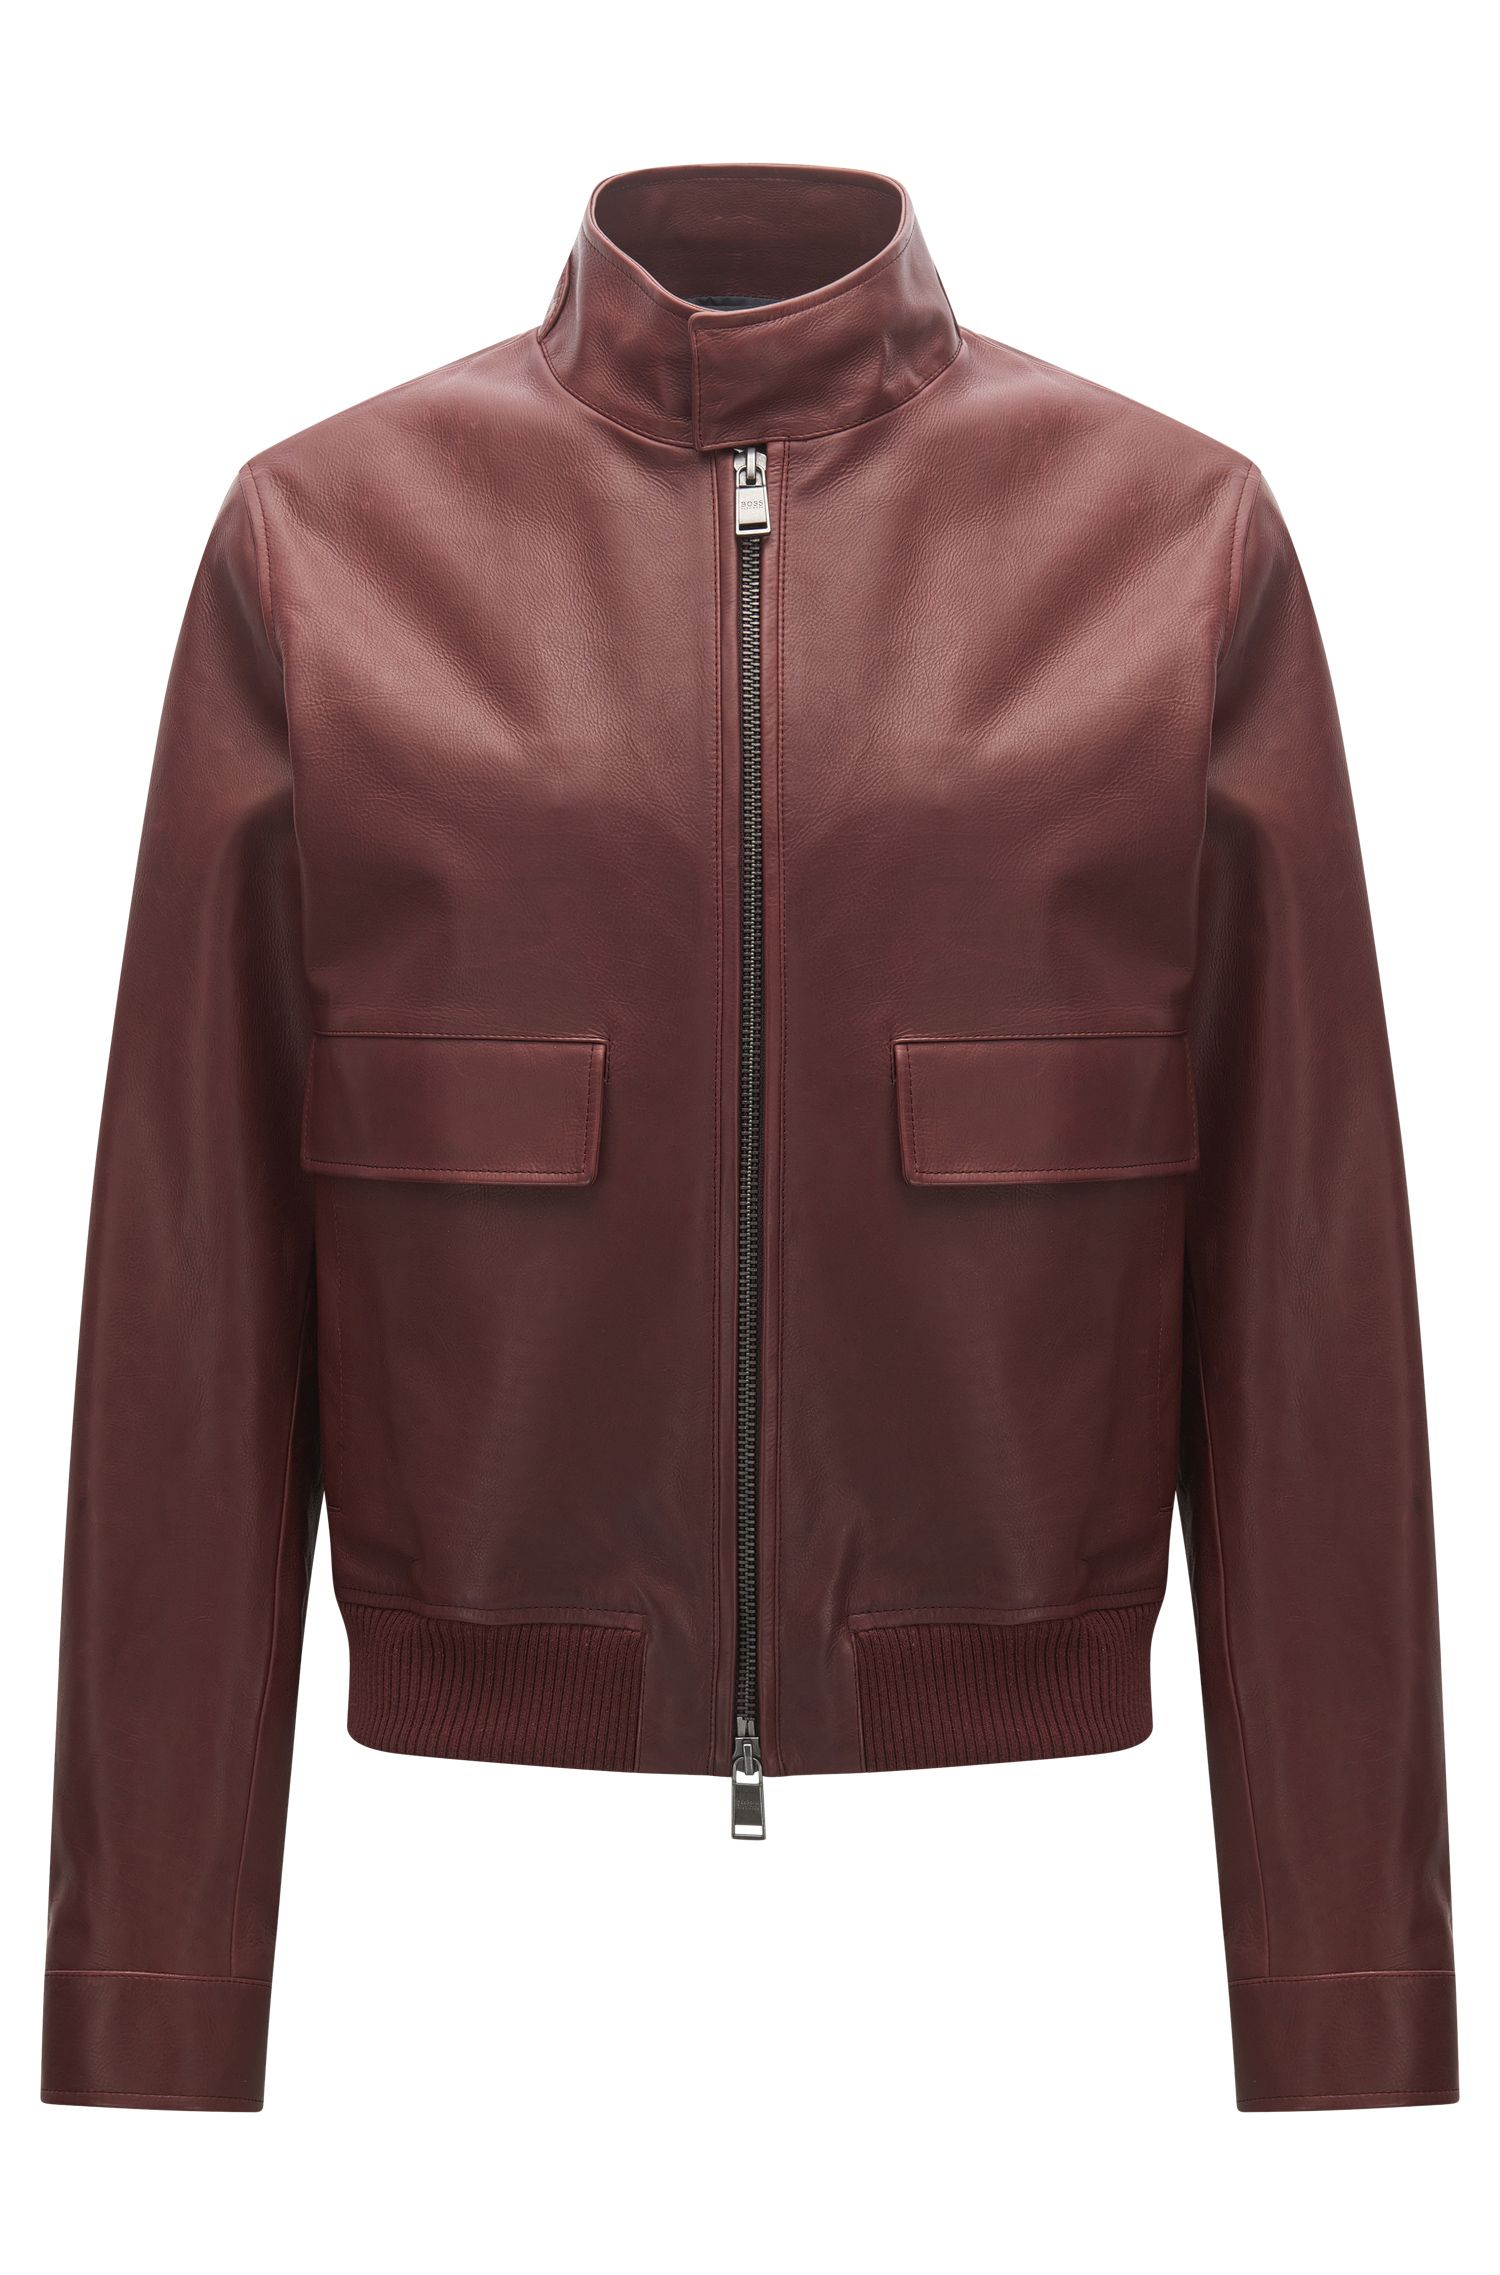 Regular-fit jacket in rich leather